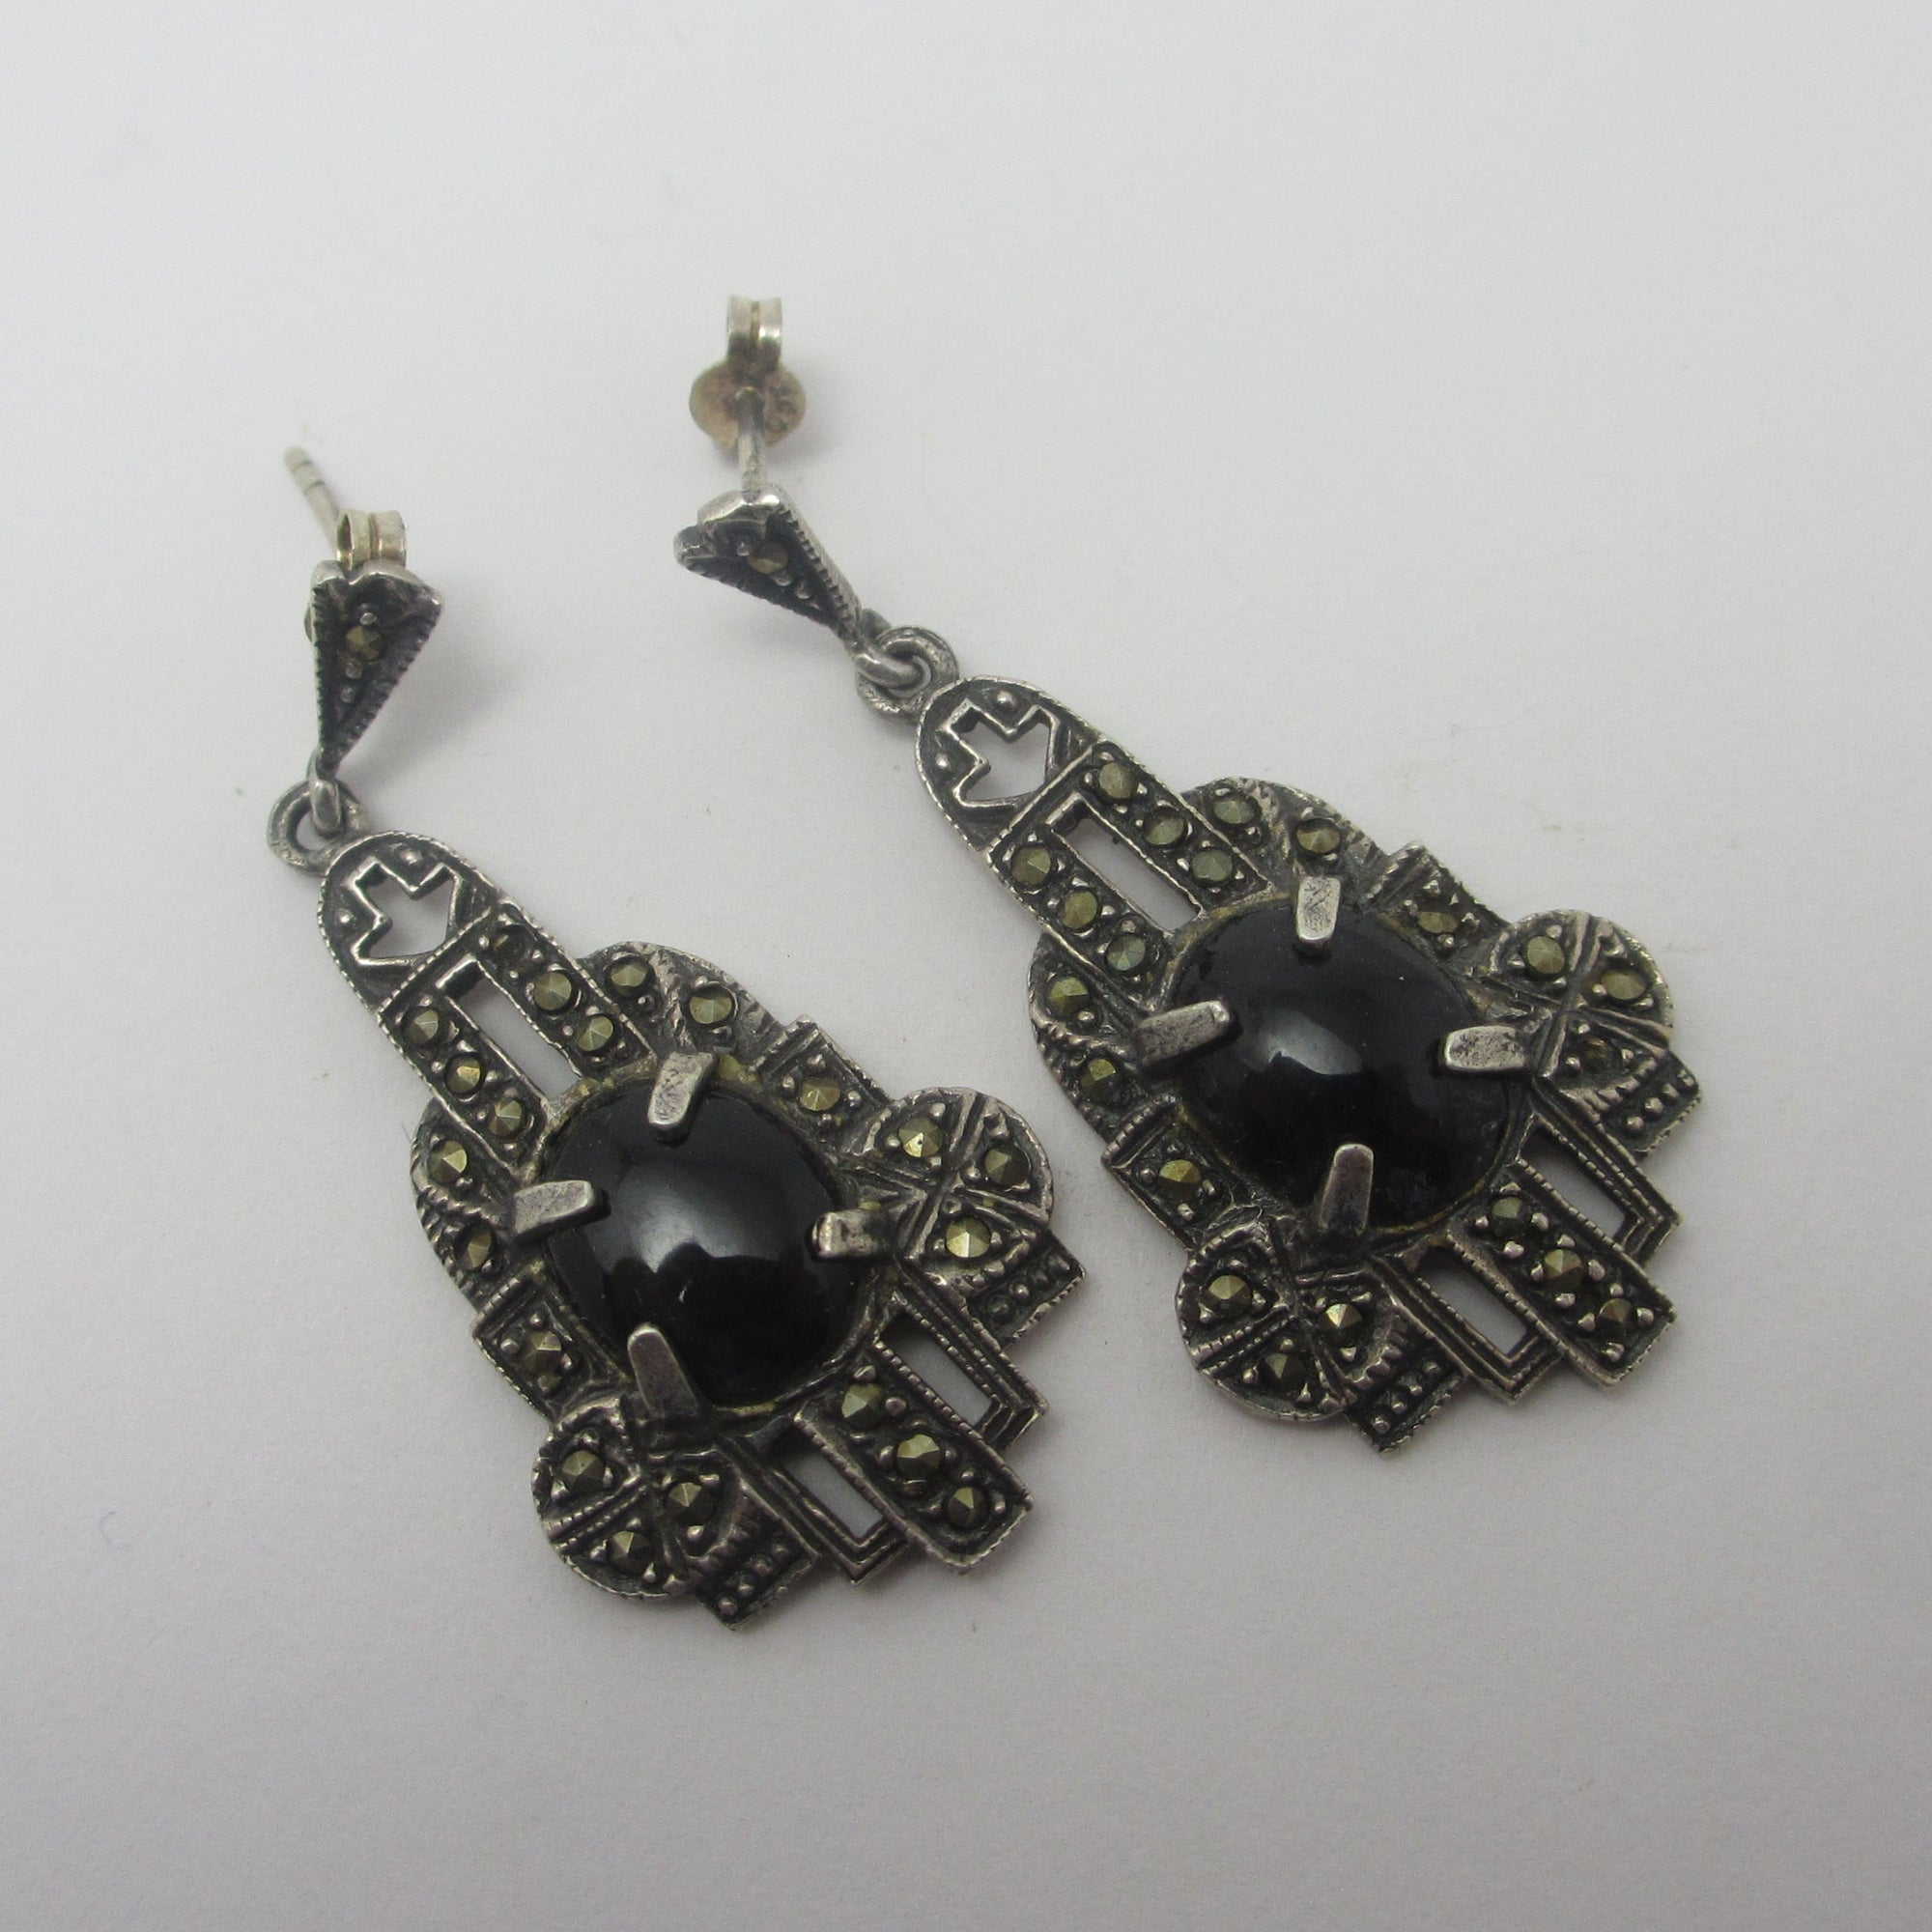 Cabochon Black Onyx Sterling Silver Marcasite Dangling Pendant Earrings Vintage c1980